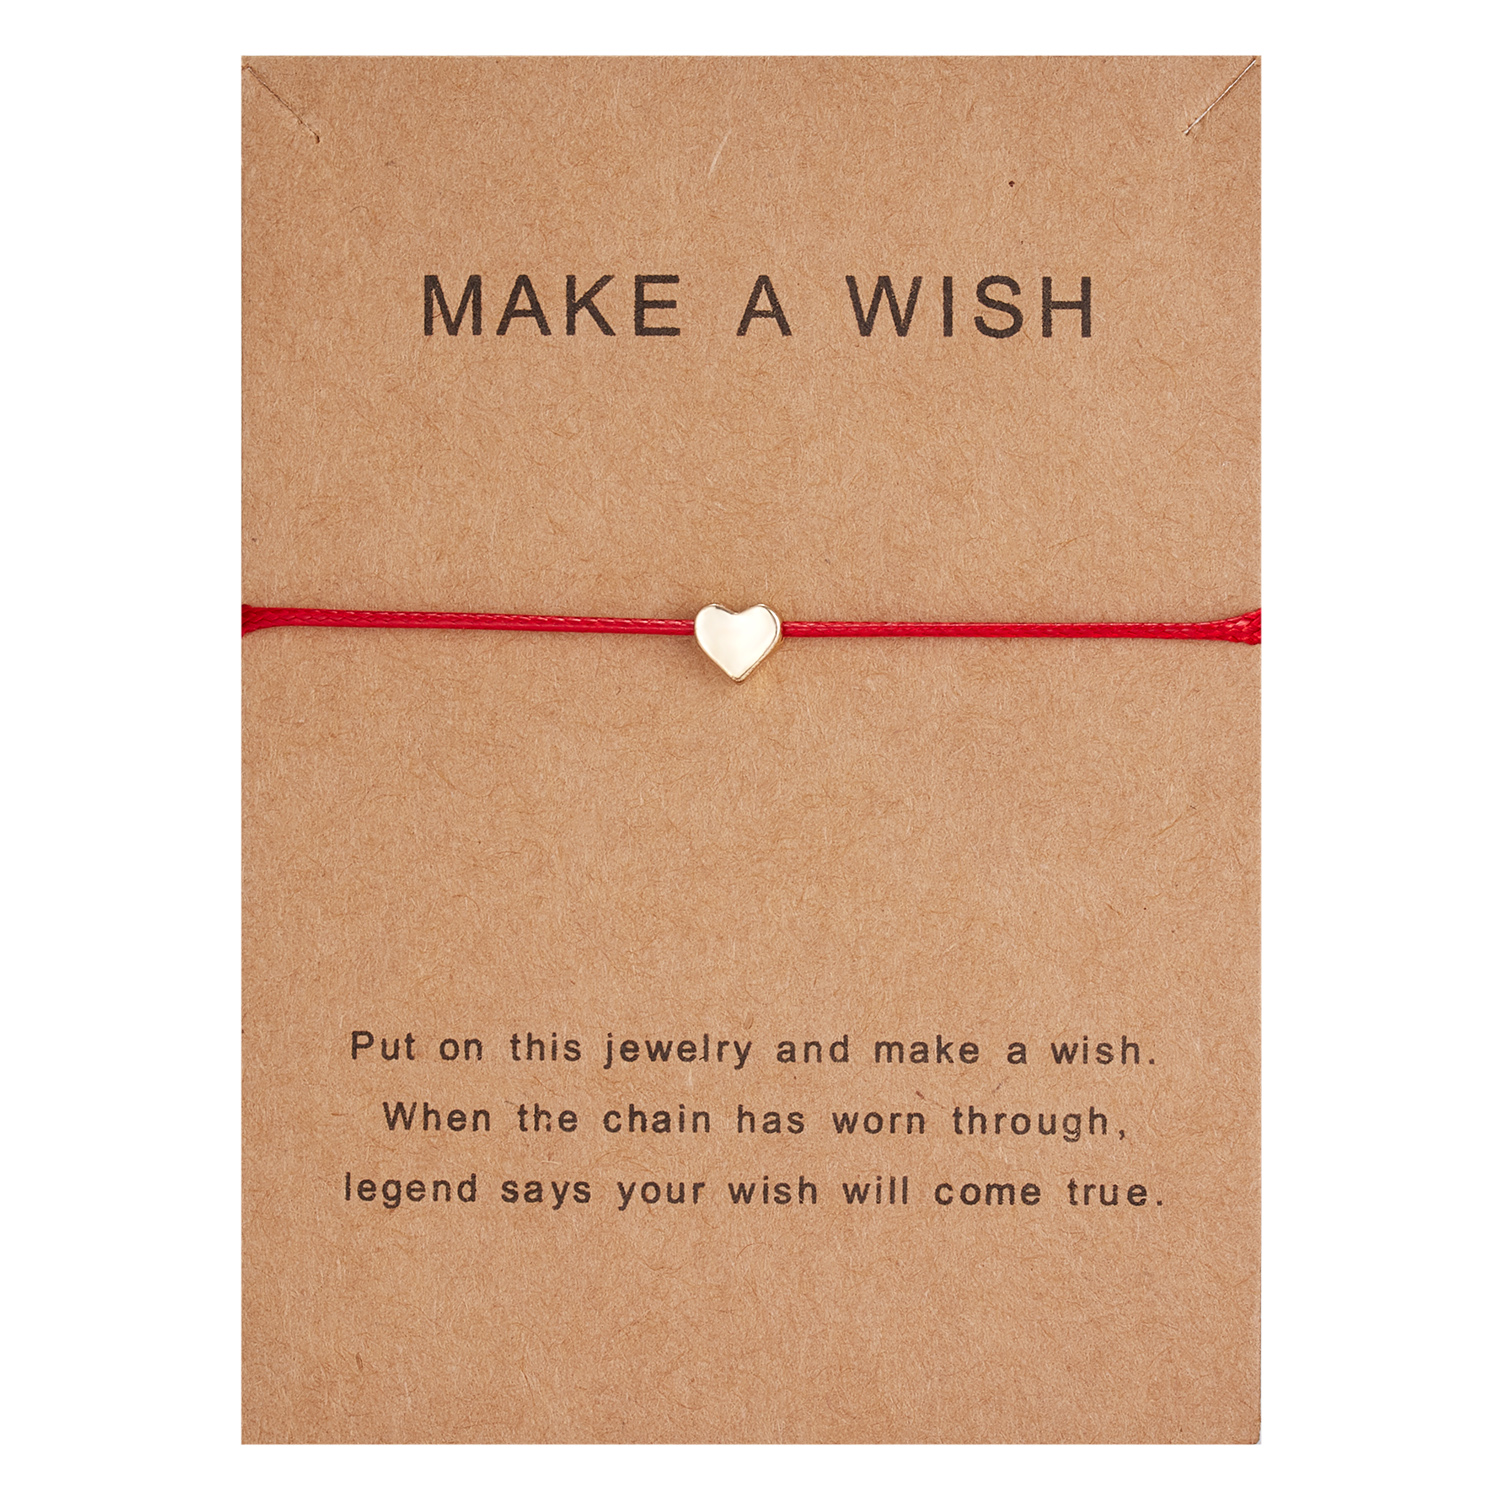 10*7.5cm Make a Wish Papper Card Love Woven <font><b>Adjustable</b></font> <font><b>Bracelet</b></font> Fashion Jewelry Gift For Women,Men,Kids image